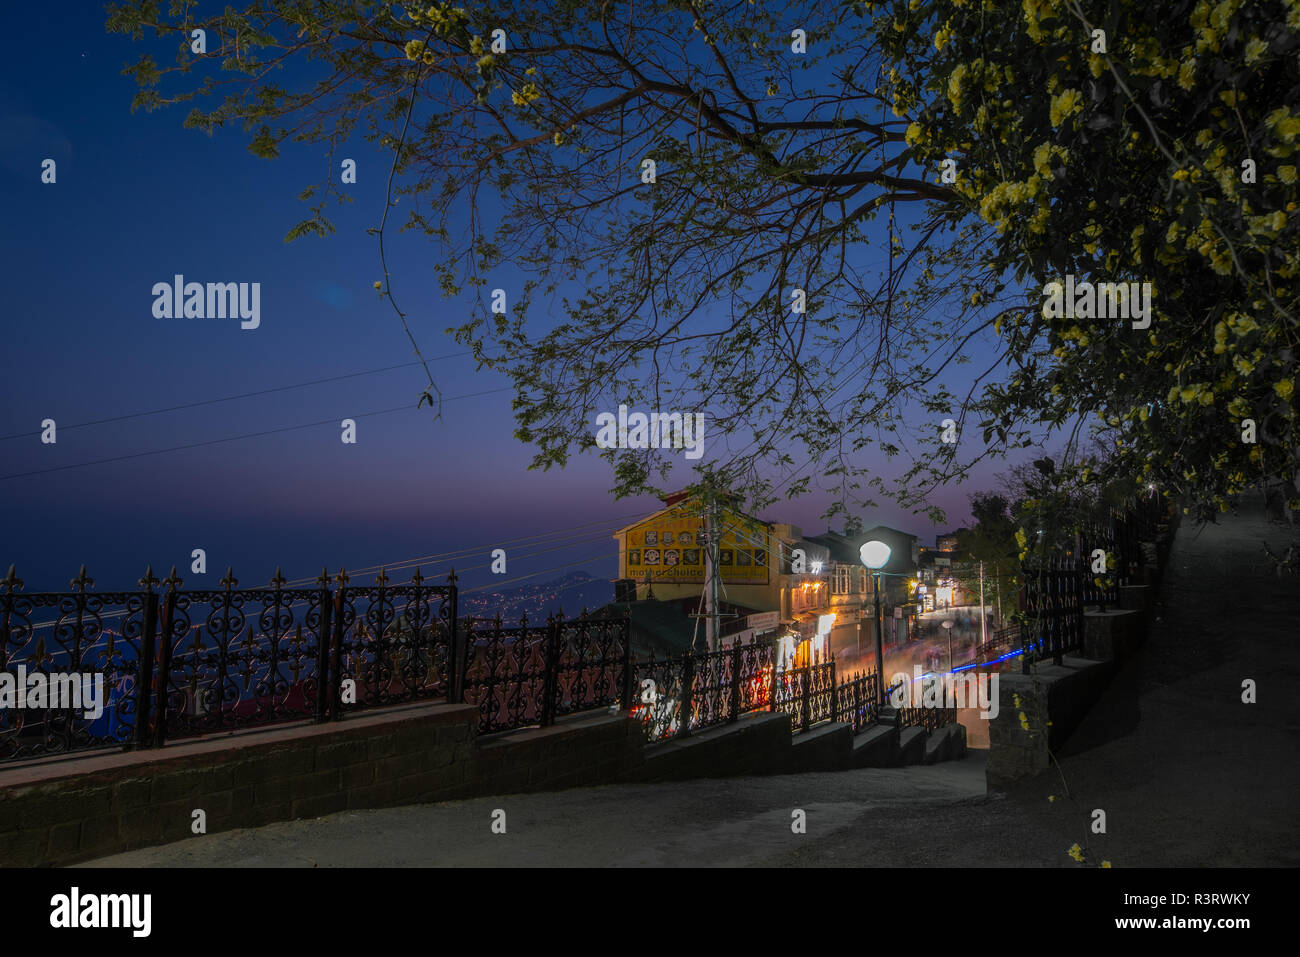 Shimla by night. View from the linking road between the Ridge and the Mall Road. Simla, Himachal Pradesh, India - Stock Image